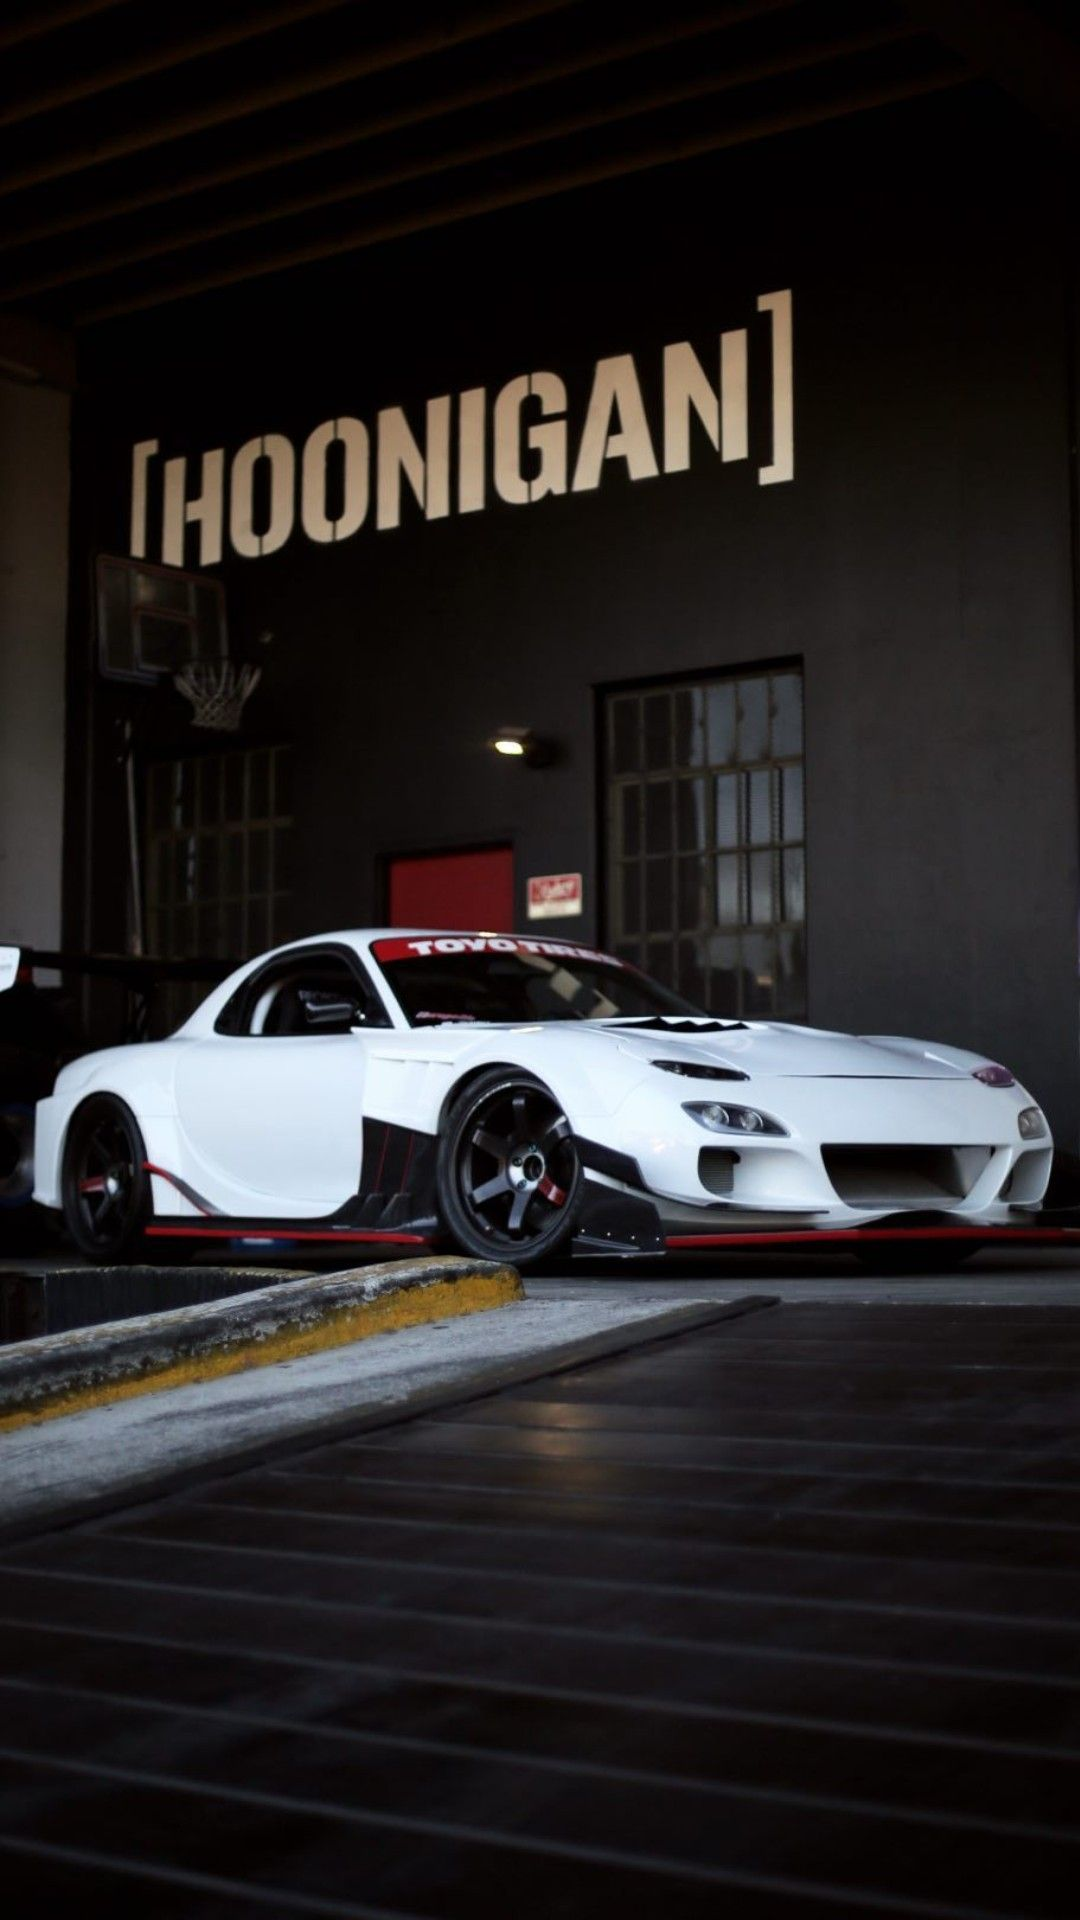 Pin By William Thai On Car Wallpapers Street Racing Cars Tuner Cars Art Cars